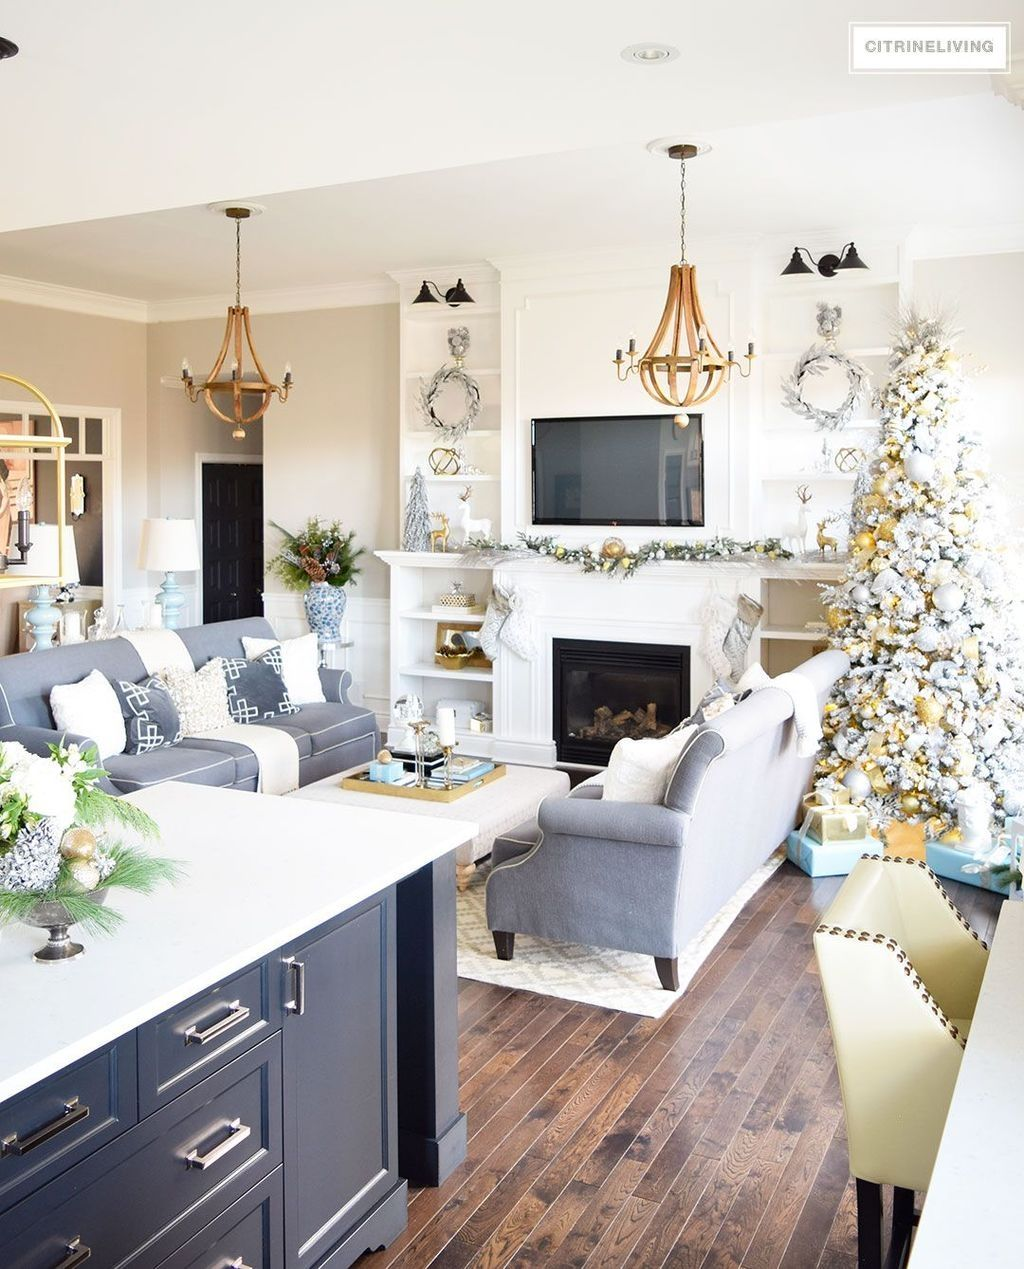 Kitchen Hearth Room Designs: 43 Fascinating Farmhouse Living Room Decor With Christmas